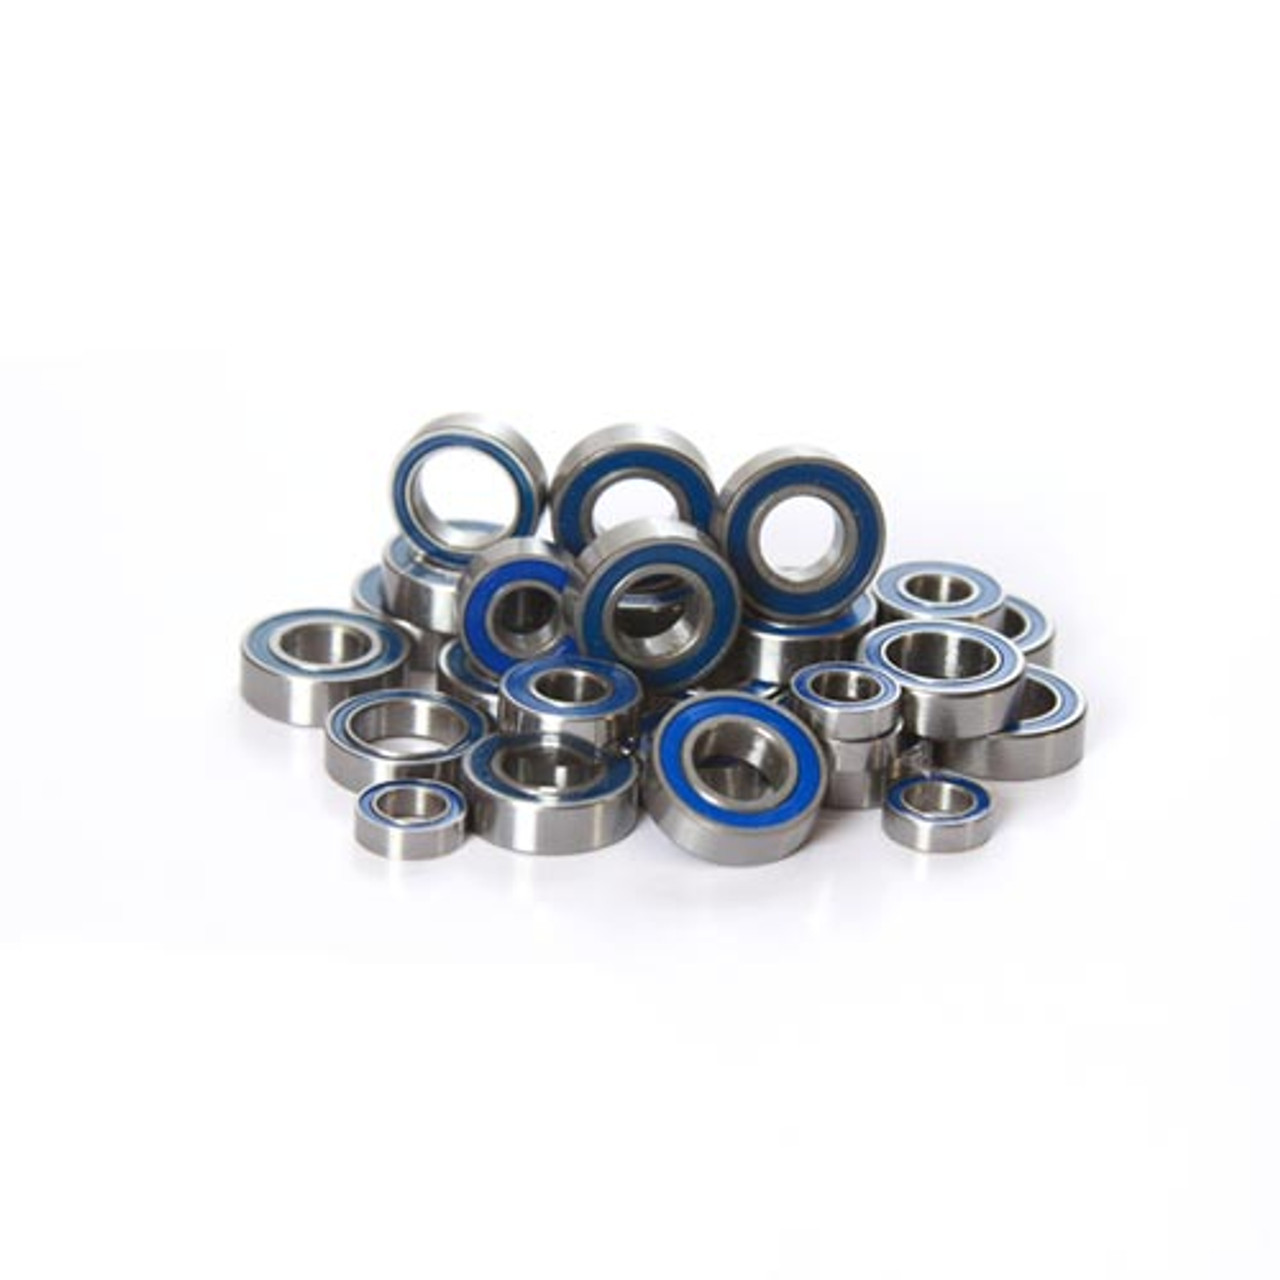 HPI SAVAGE FLUX FULL BEARING KIT (28 PCS)